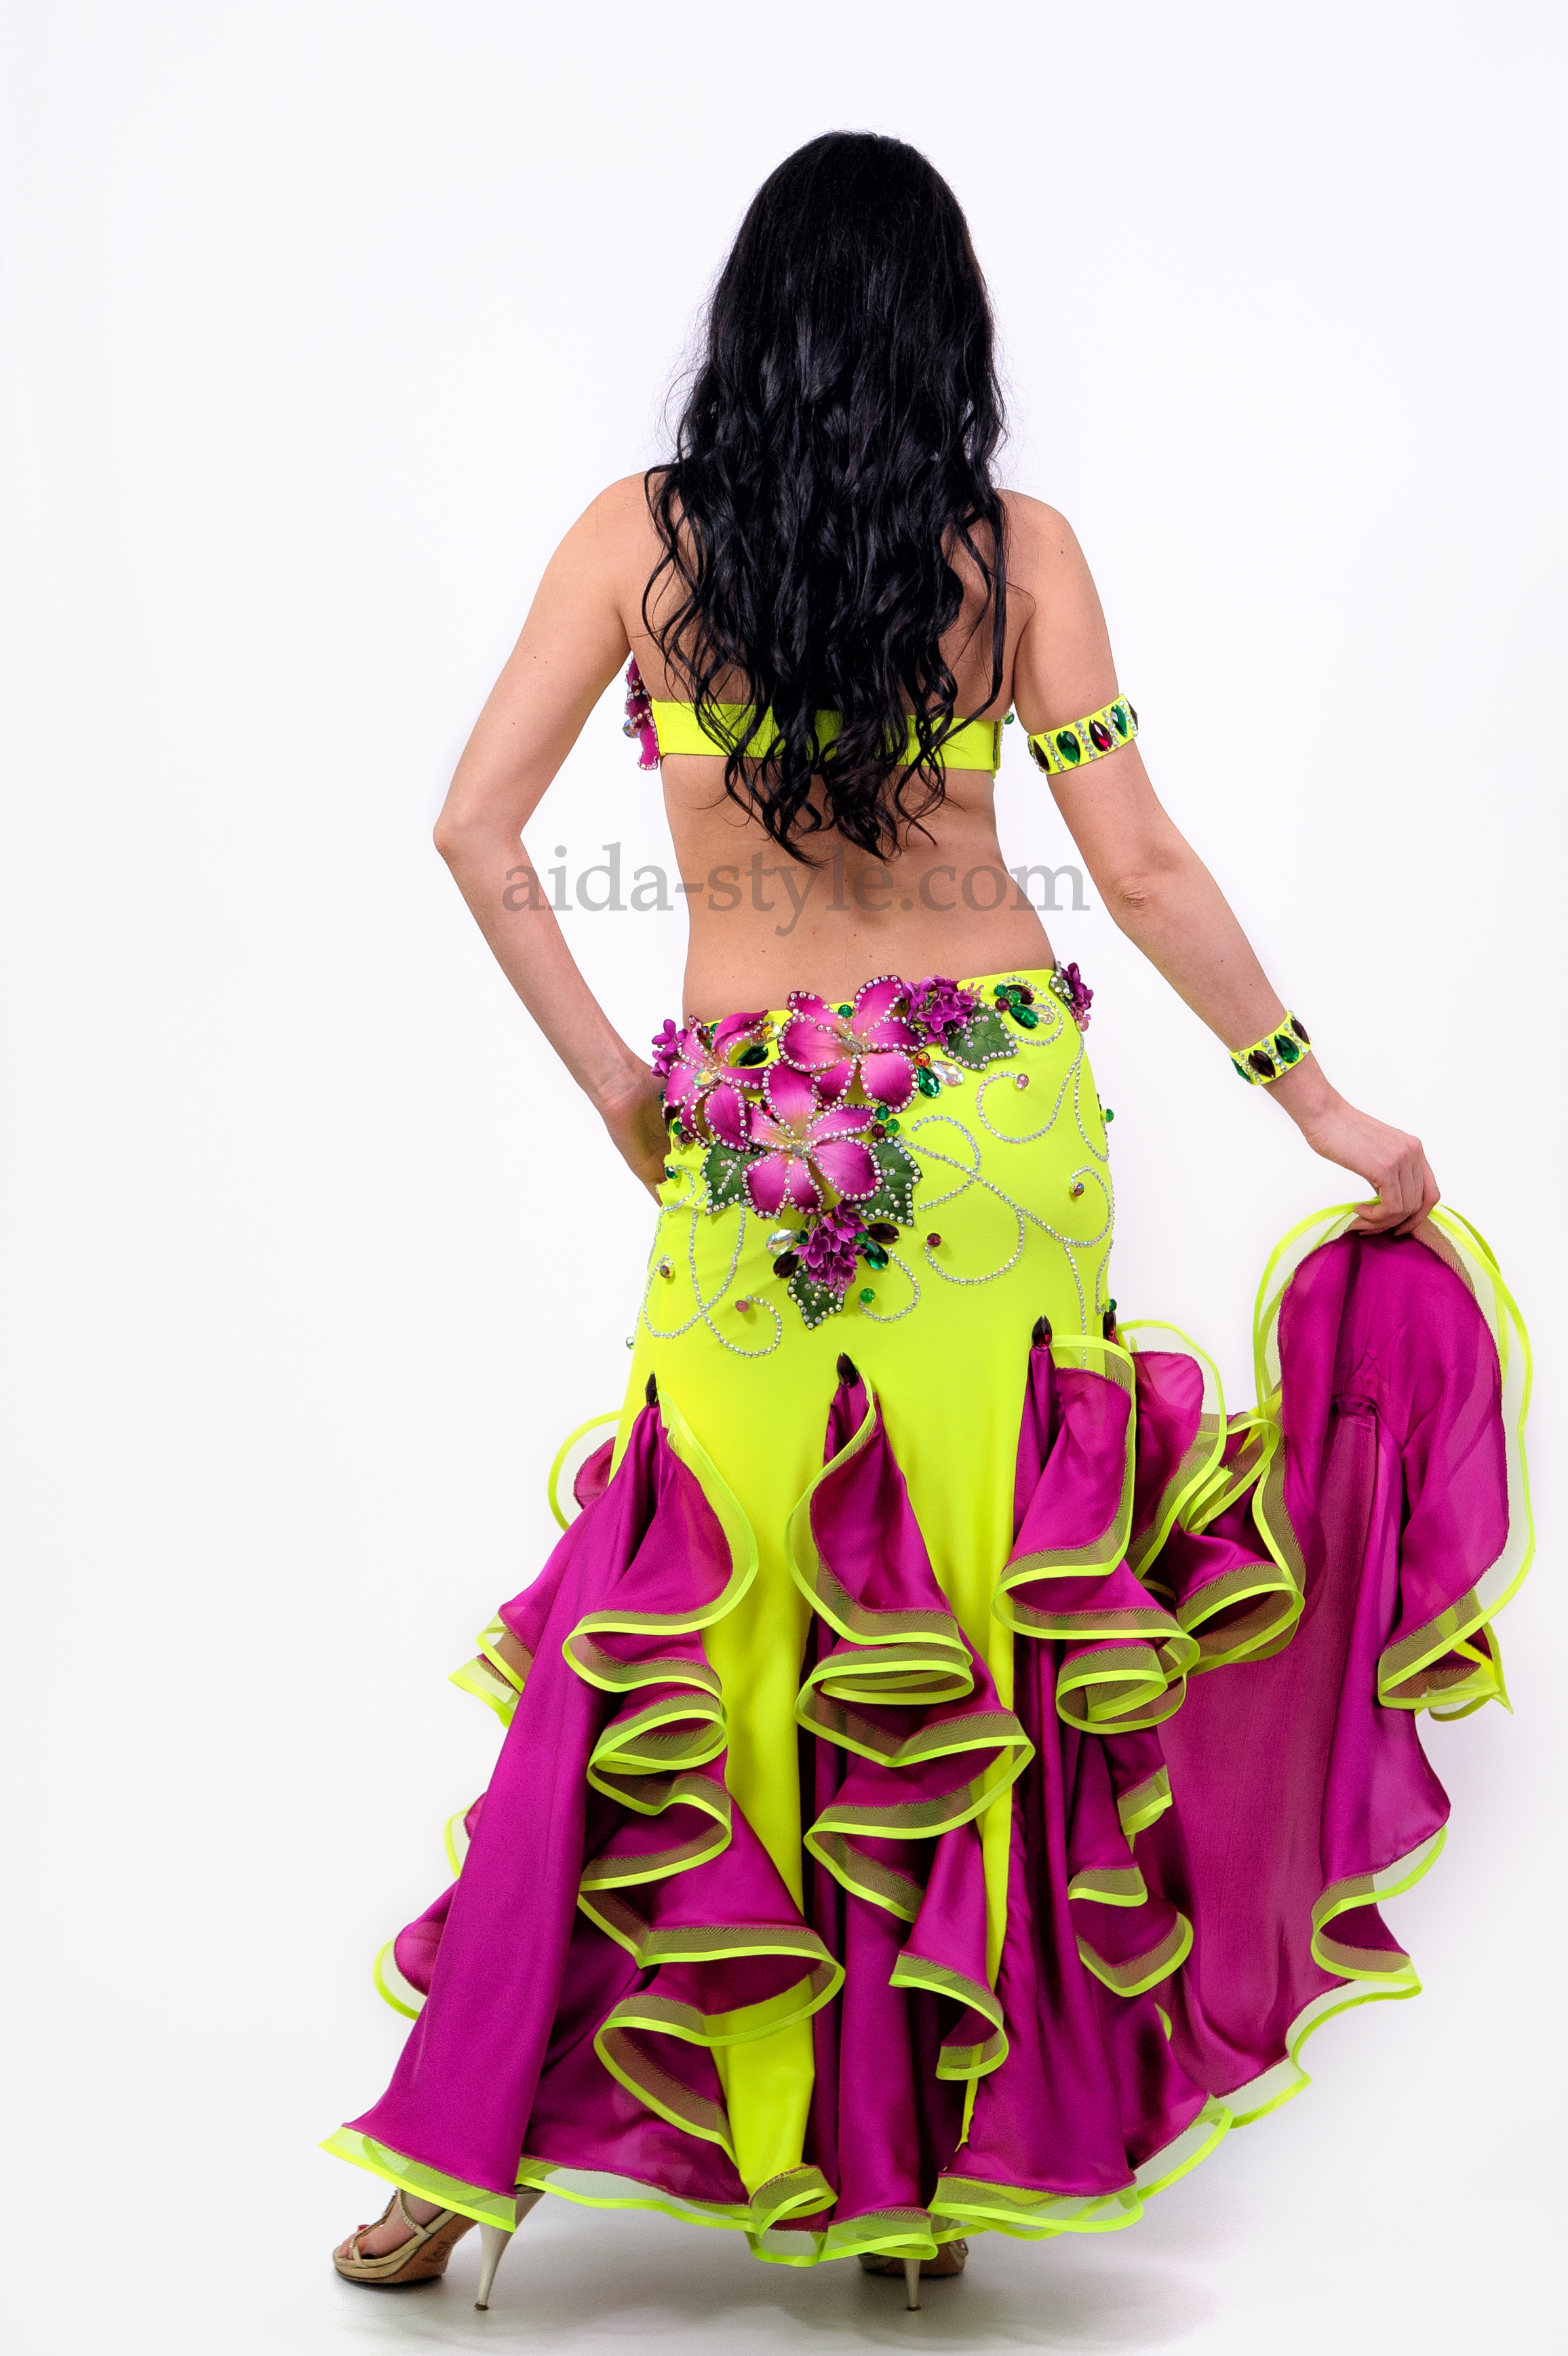 Professional belly dance dress. Violet color of artificial flowers match the color of flounces on the skirt. The dress comes together with hand accessories